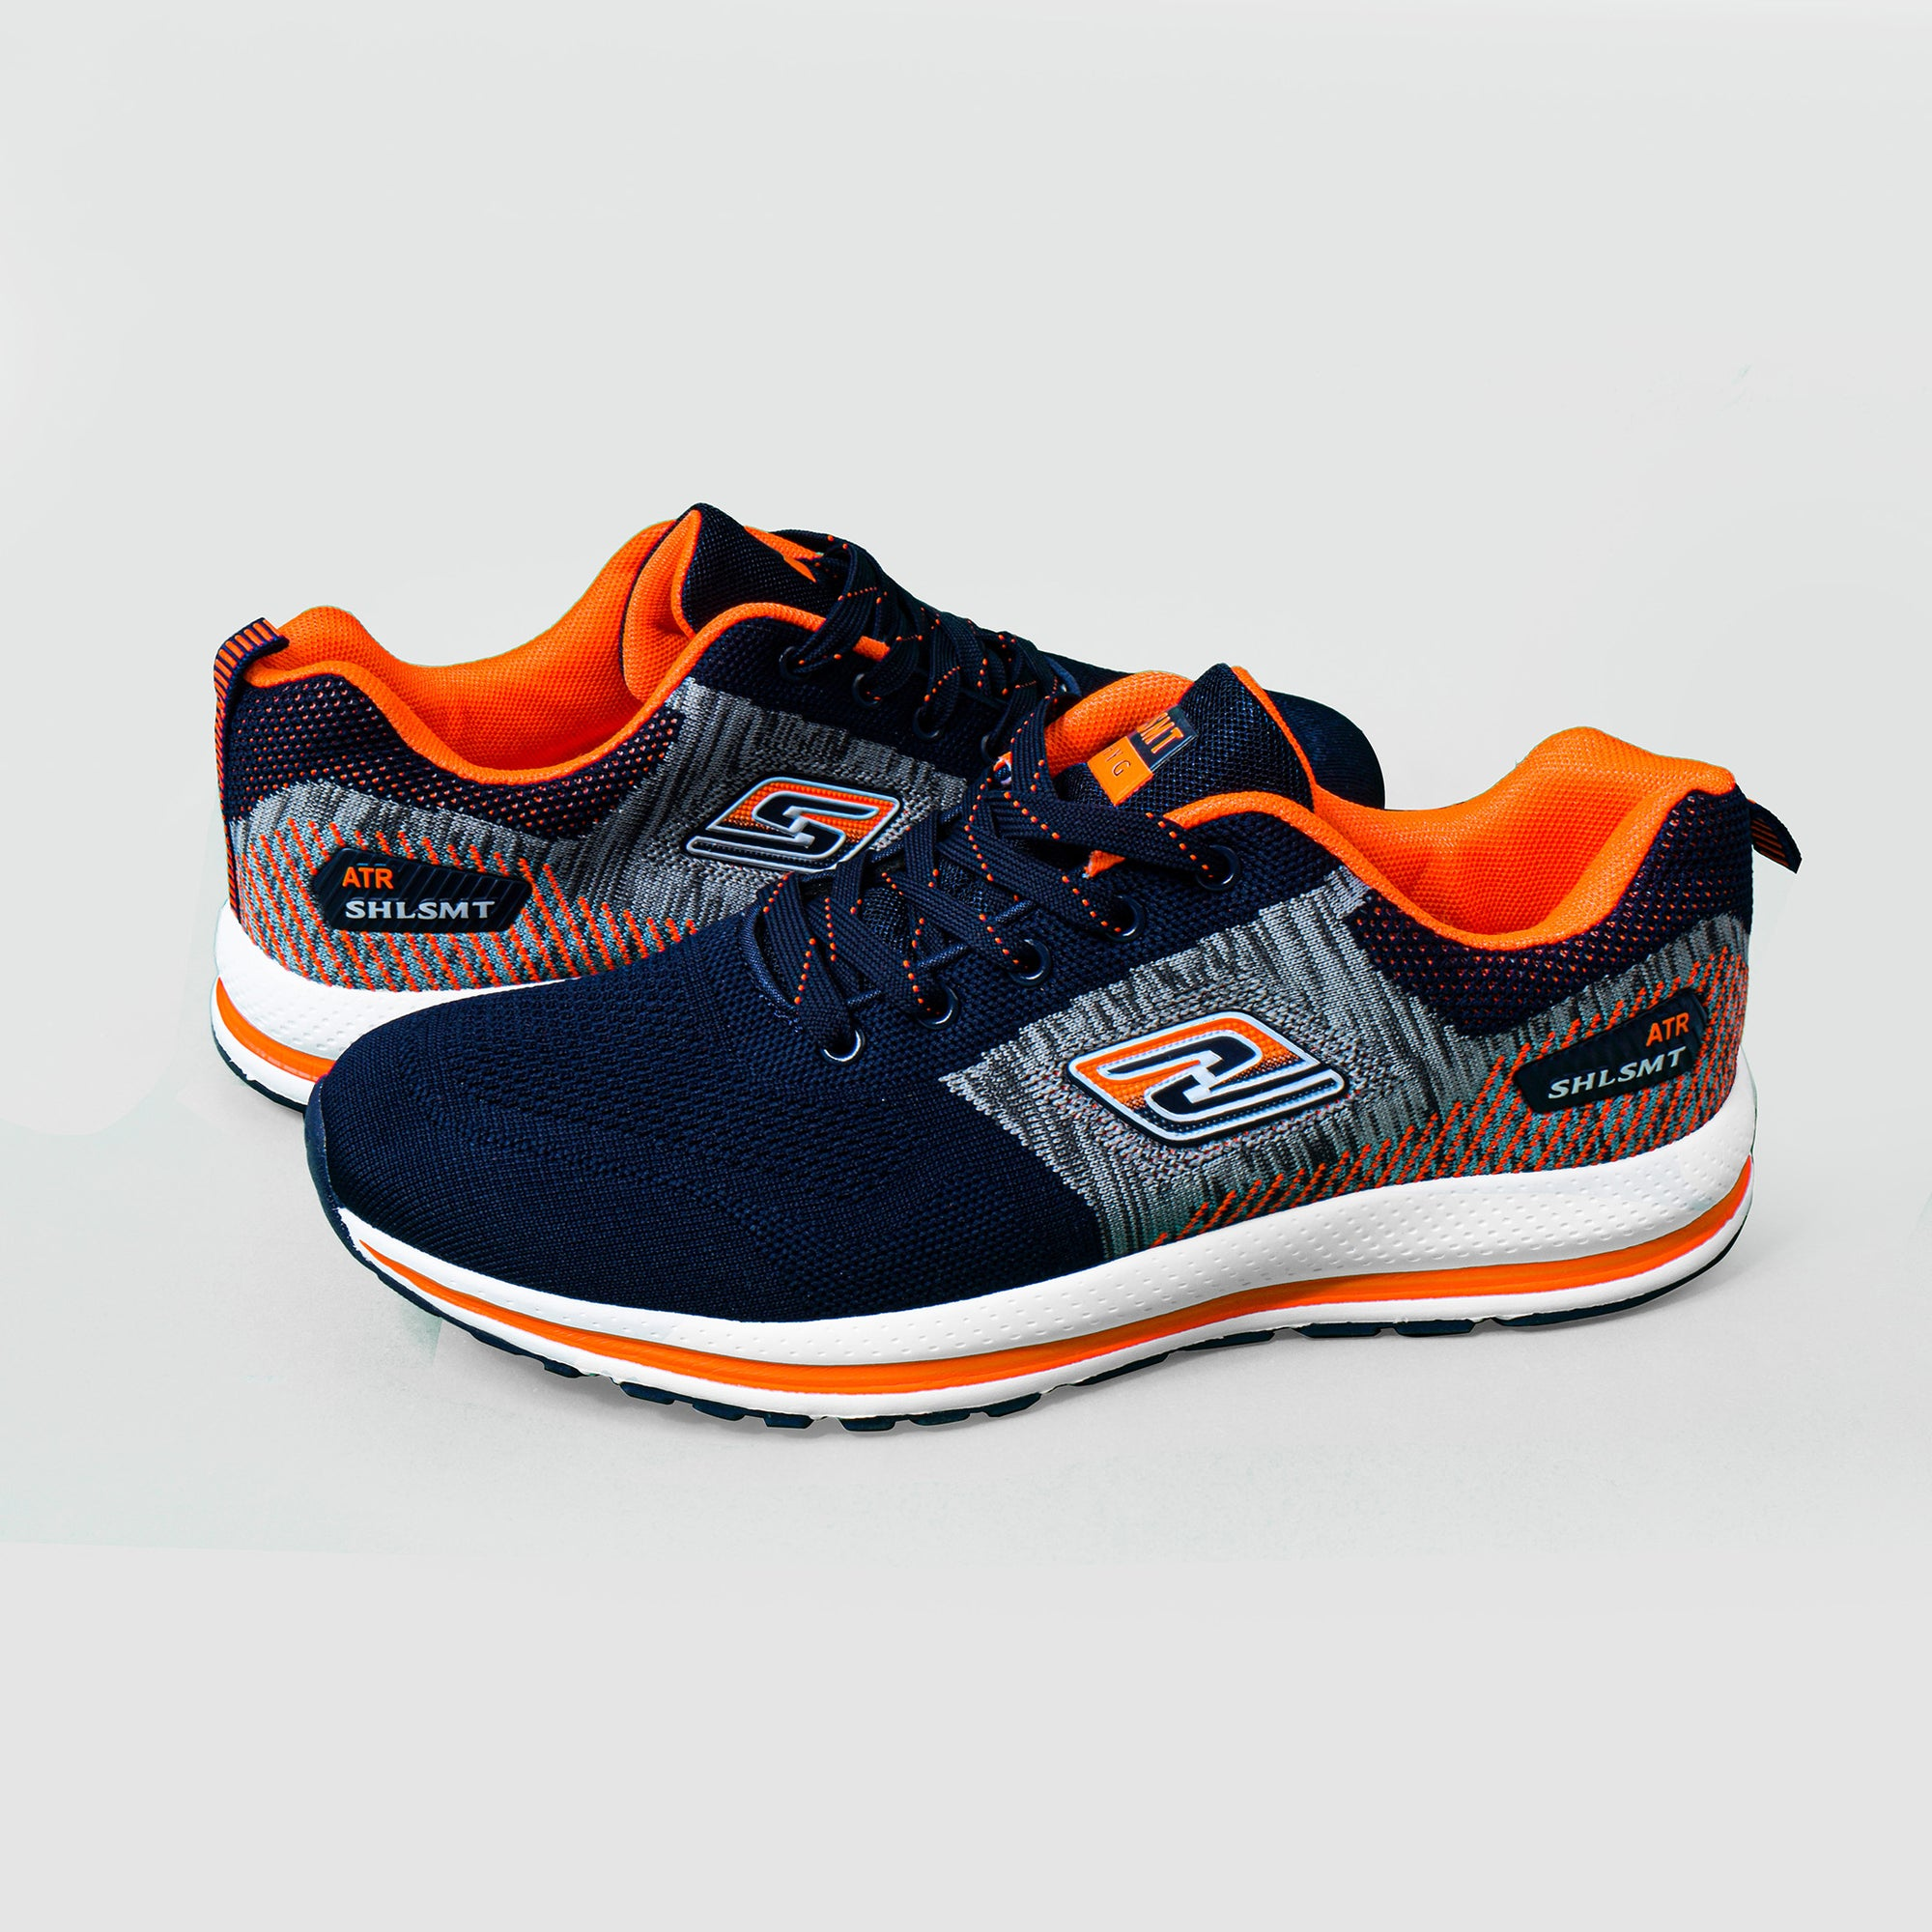 Classic Stylish Sports Lace Up Shoes For Men-Navy & Orange-NA10836